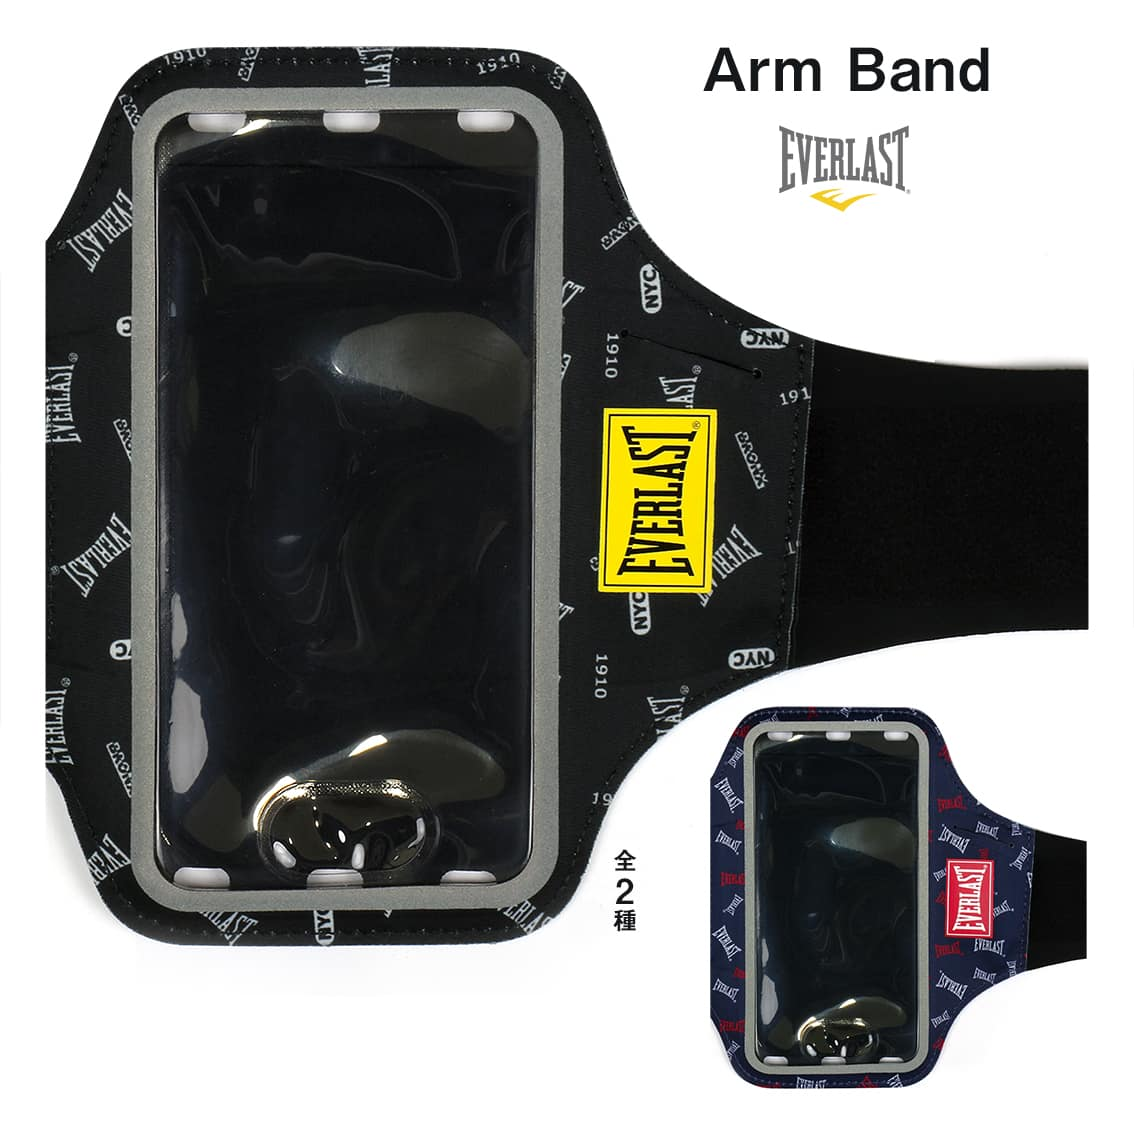 EVERLAST Arm Band(アームバンド)